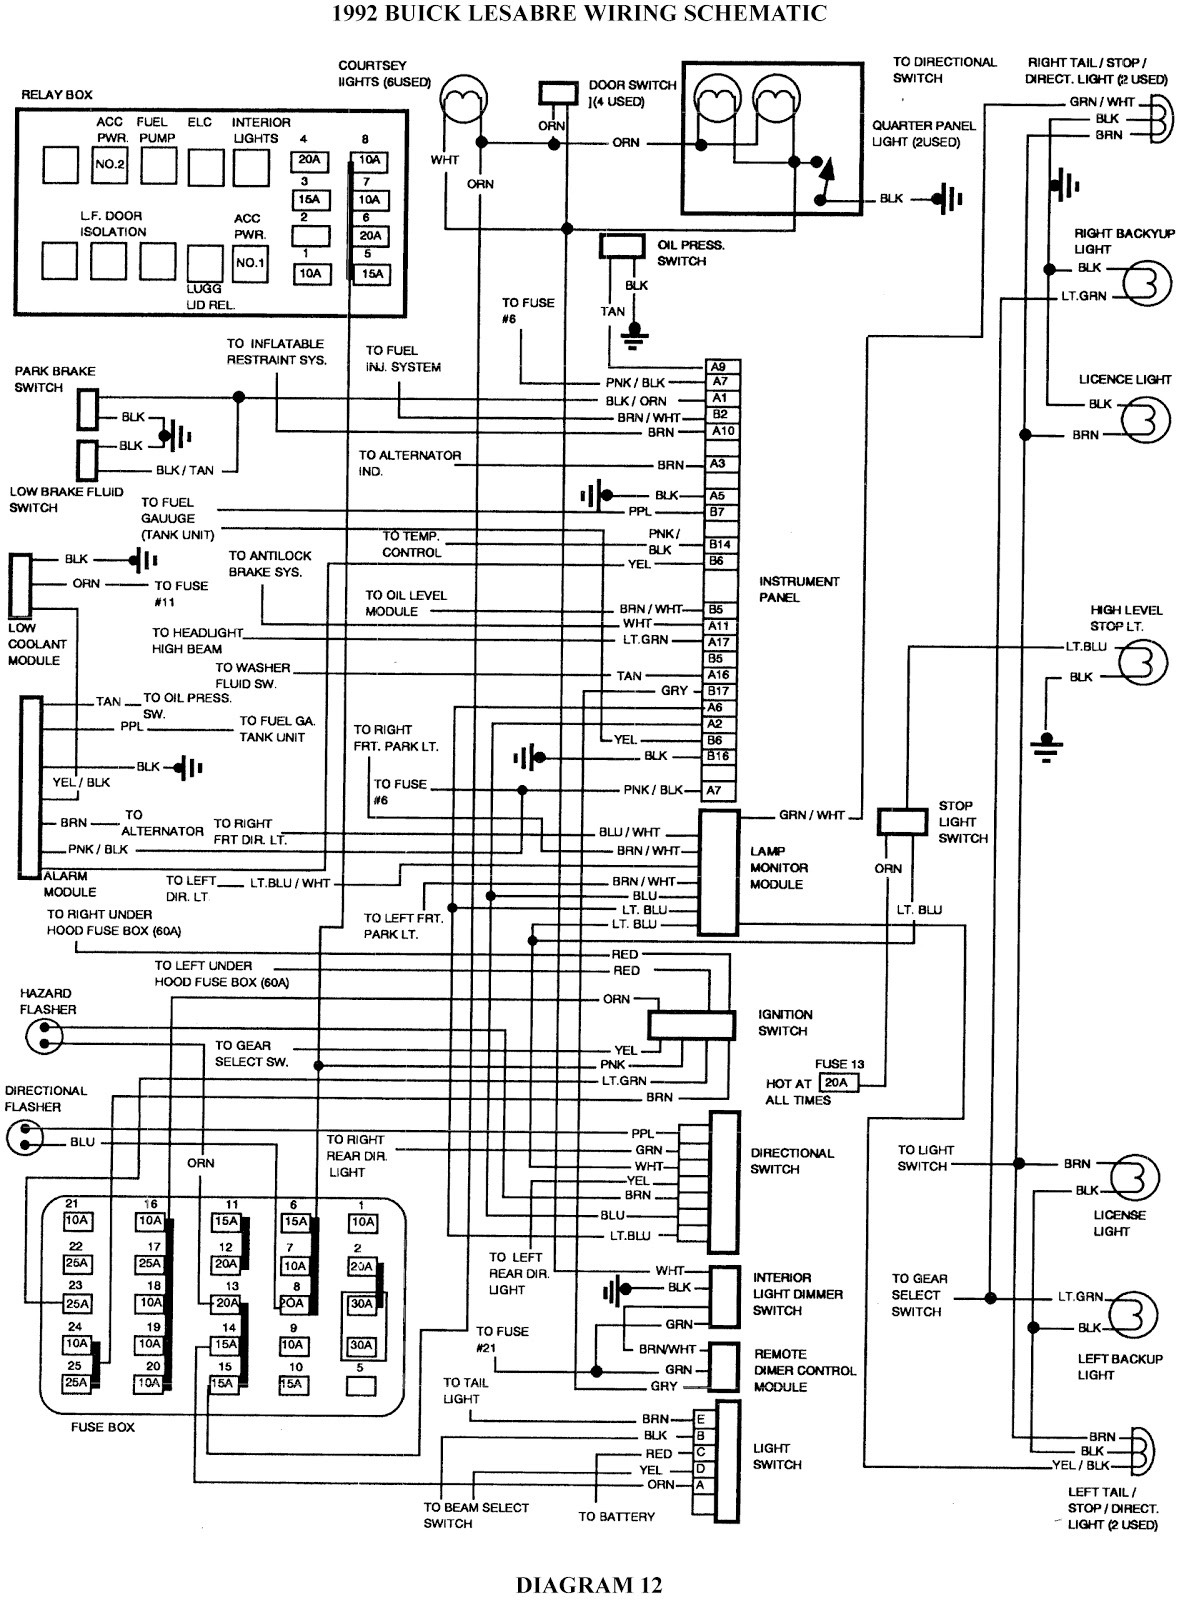 95 4runner radio wiring diagram